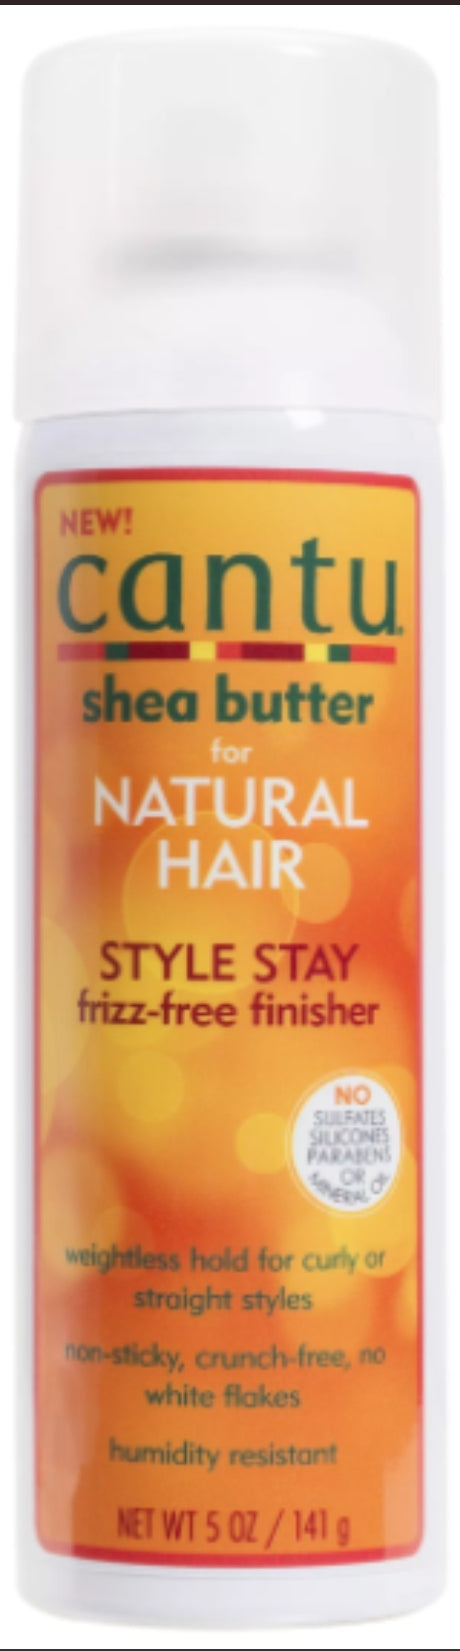 Cantu Natural Style Stay Frizz-Free Finisher 5 fl oz